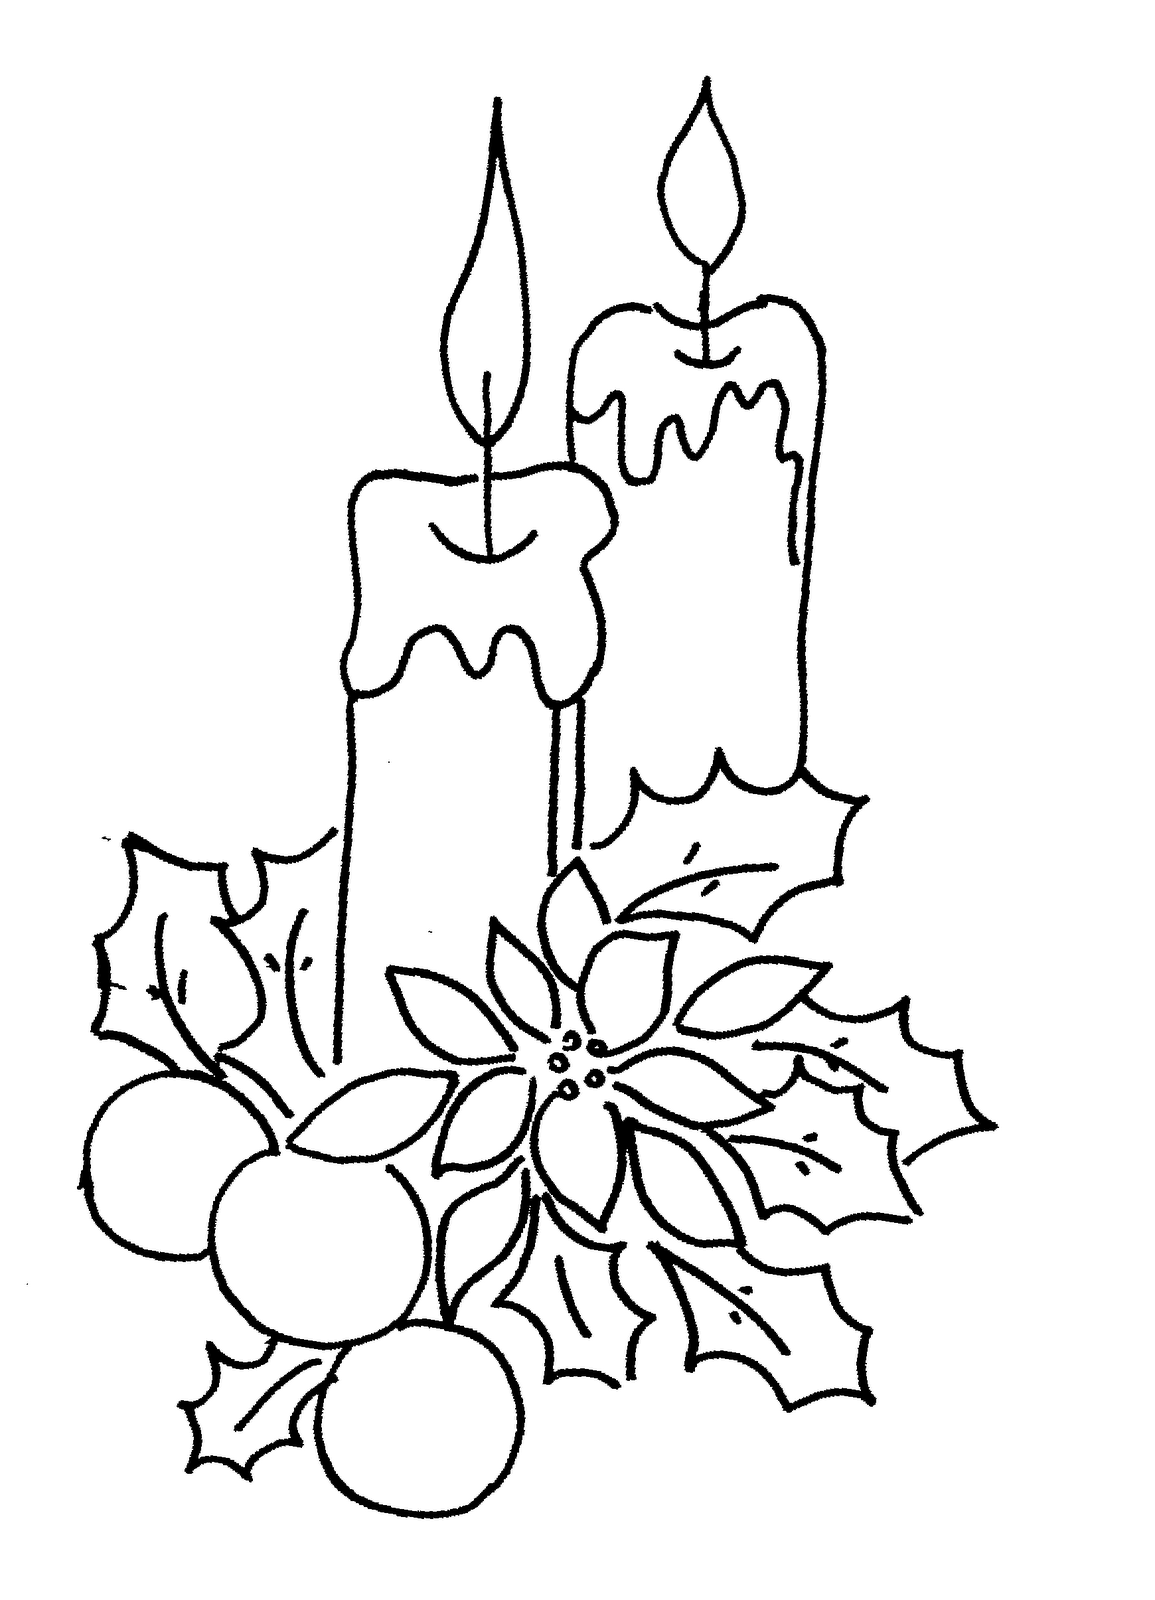 Velas Para Colorir Free Christmas Coloring Pages Christmas Colors Christmas Coloring Pages